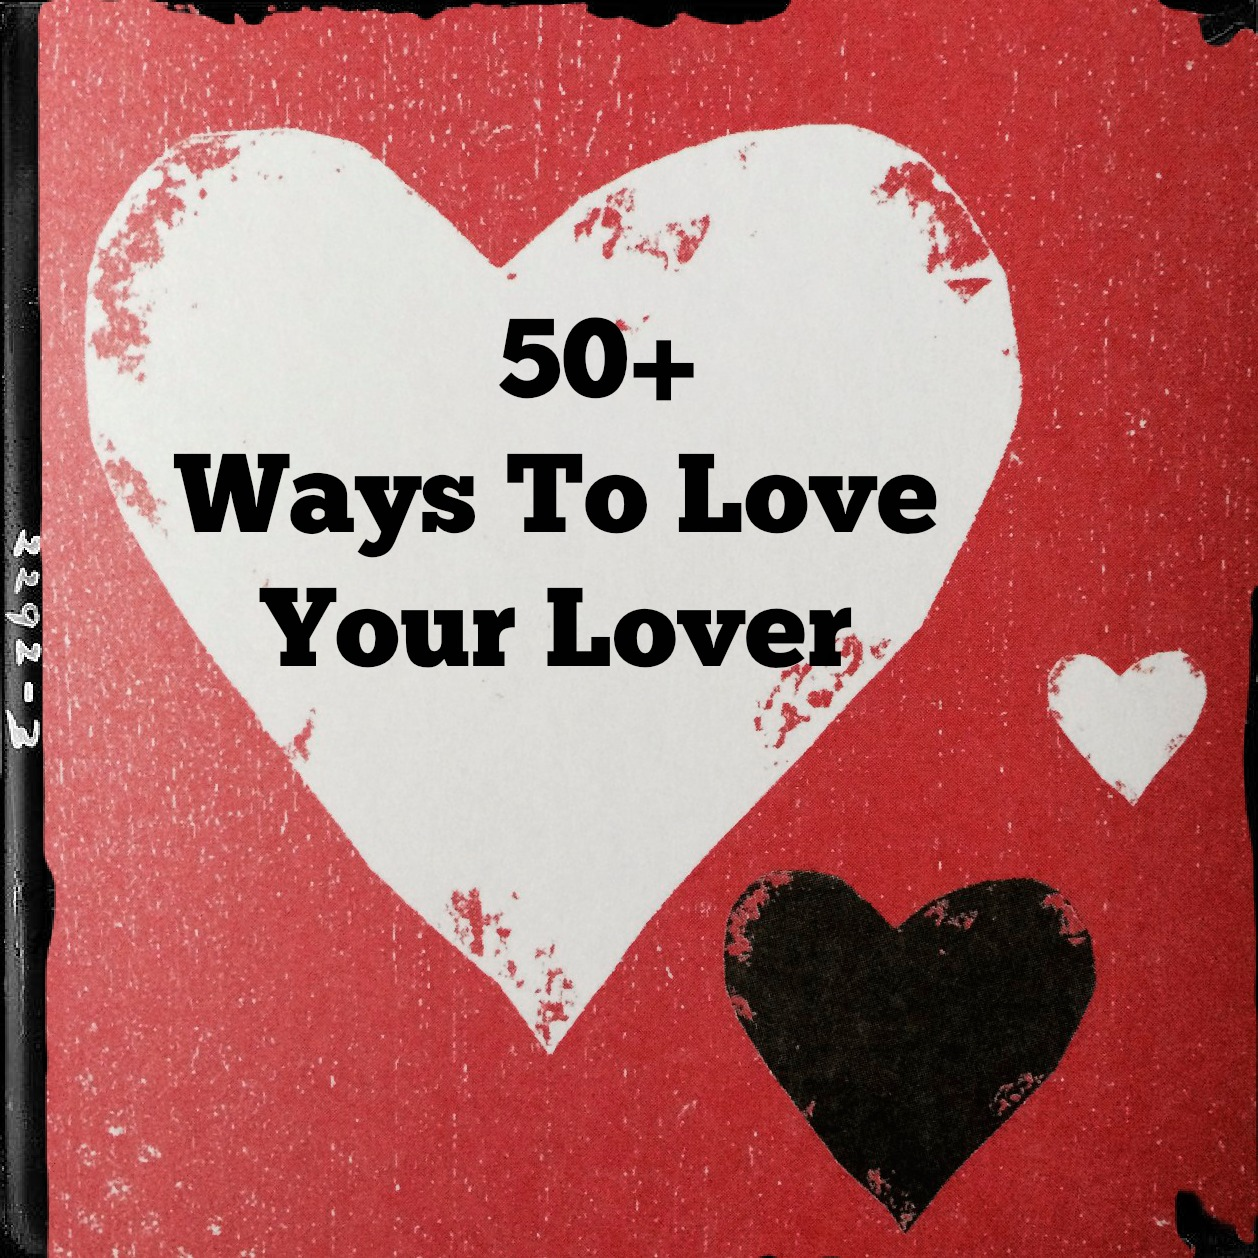 50+ Ways To Love Your Lover.jpg